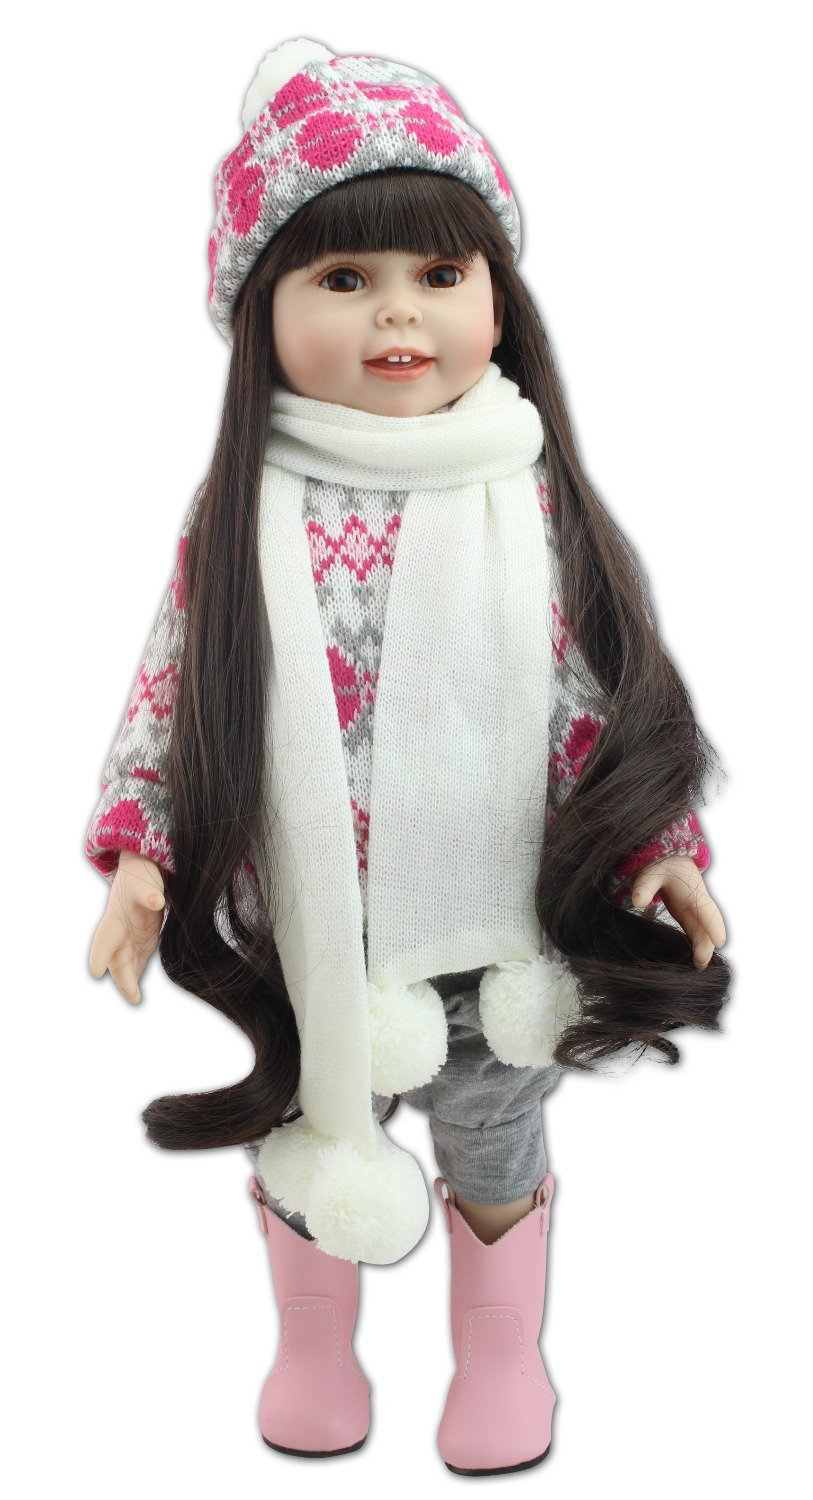 New Design Most Popular Winter Doll 18inches Fashion Play